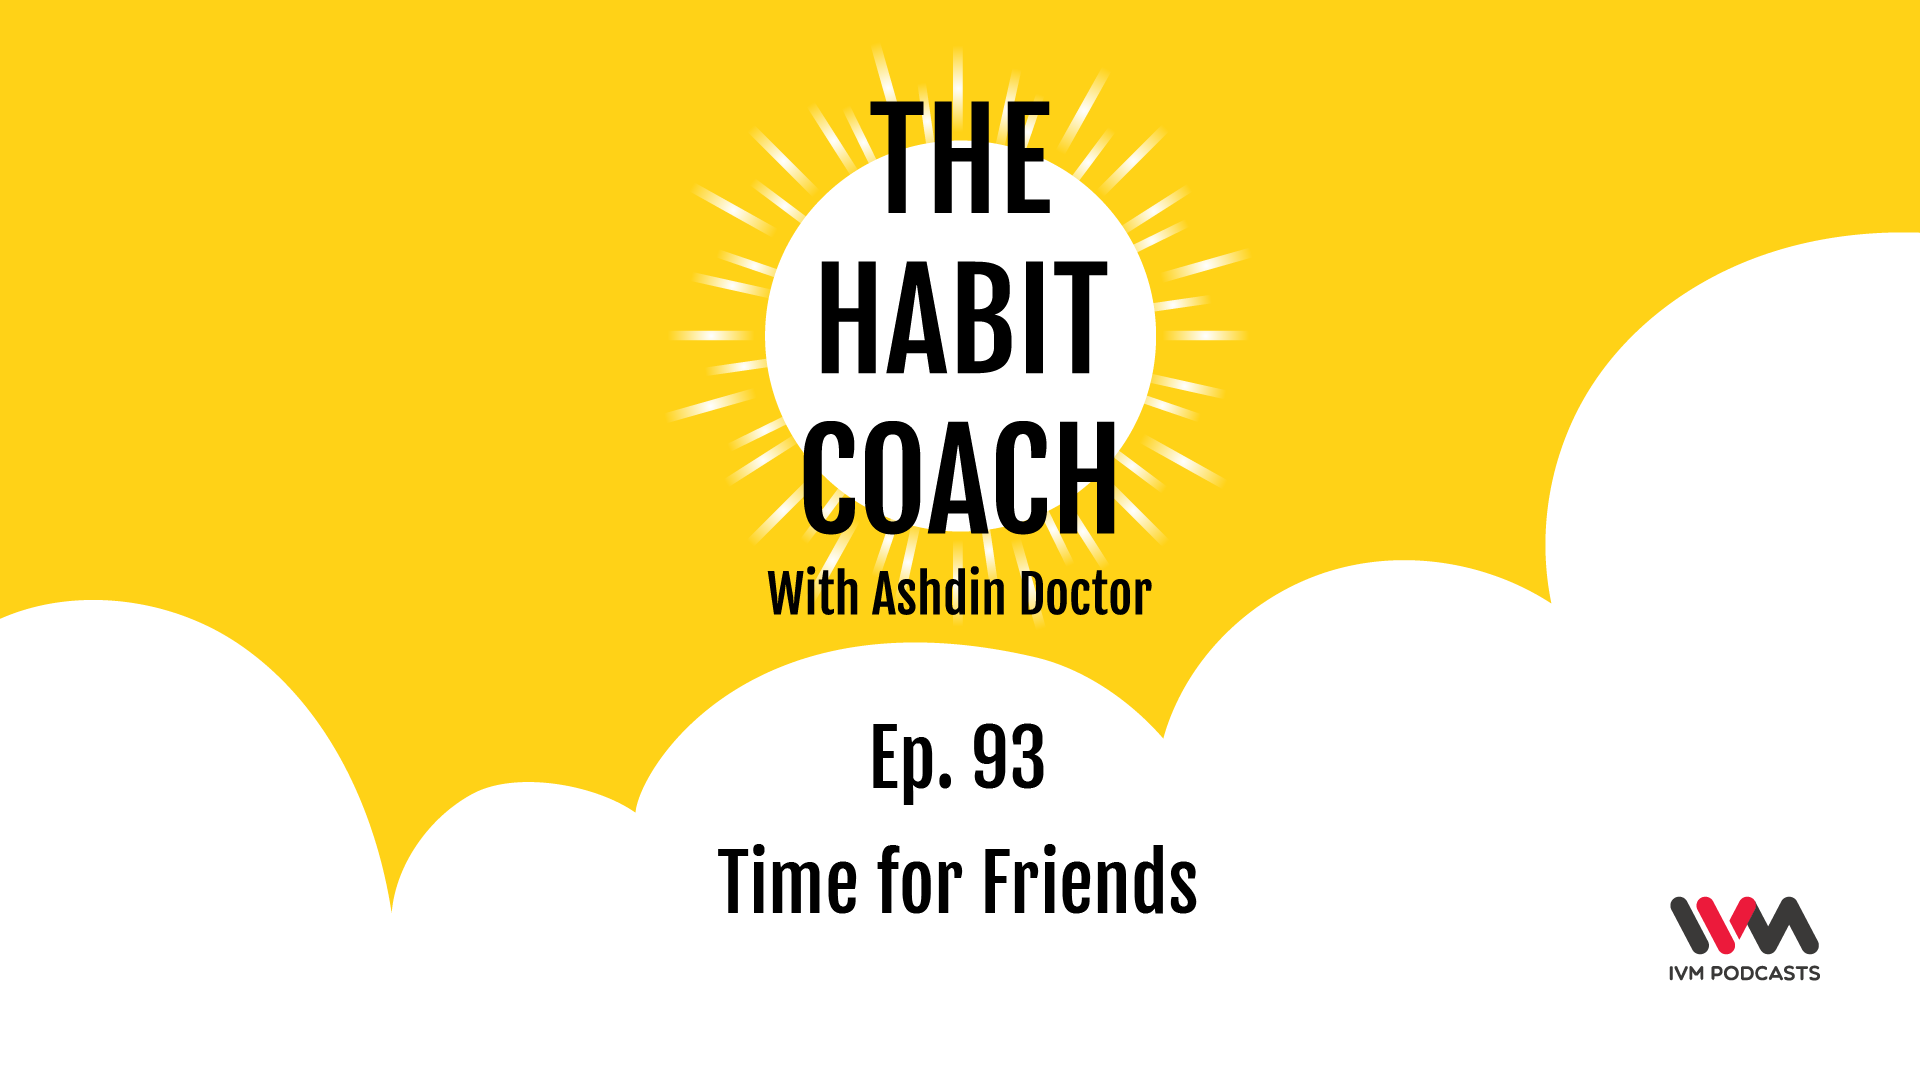 TheHabitCoachEpisode93.png